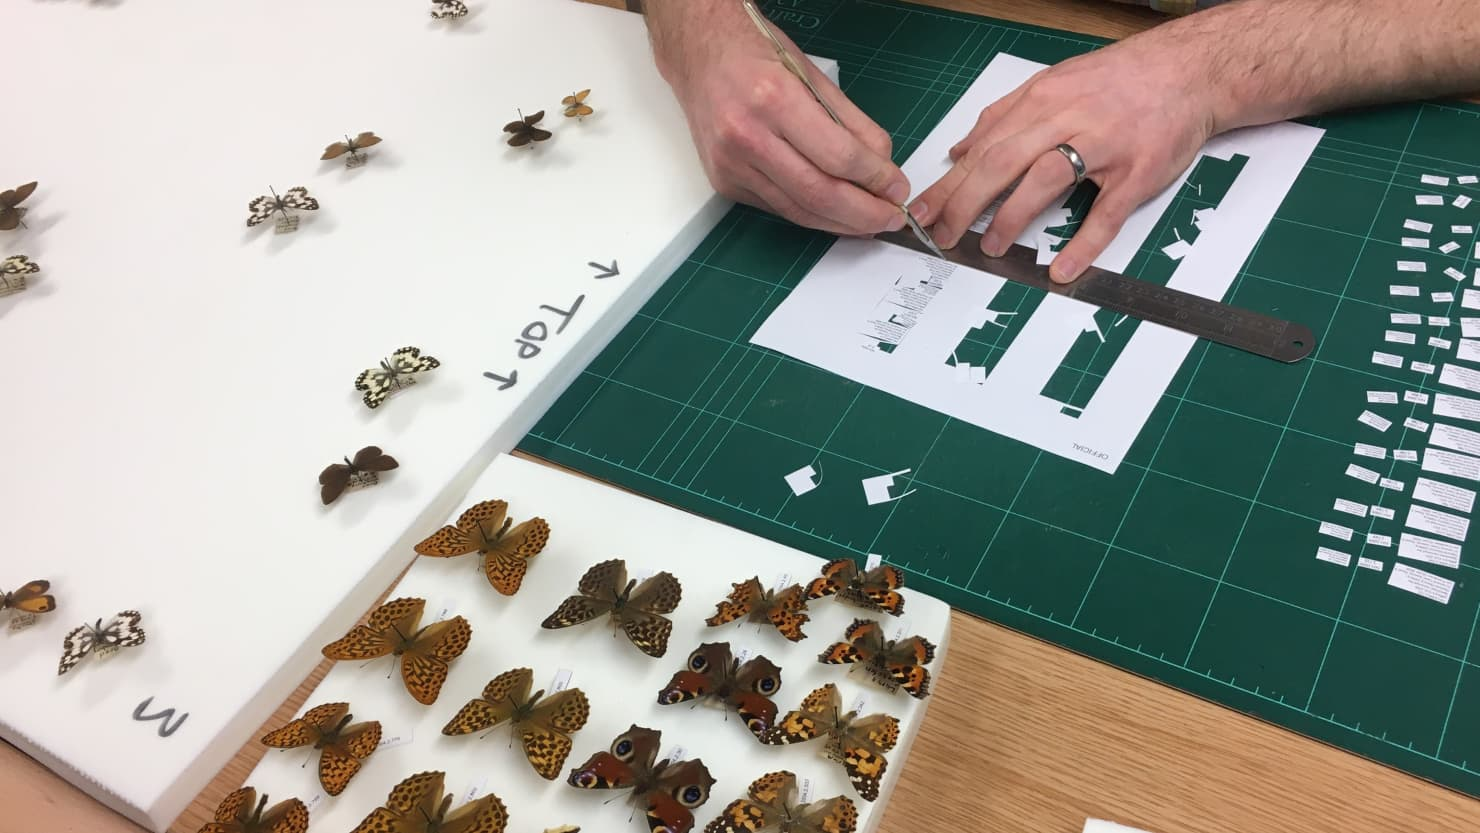 Pinning butterflies and creating labels